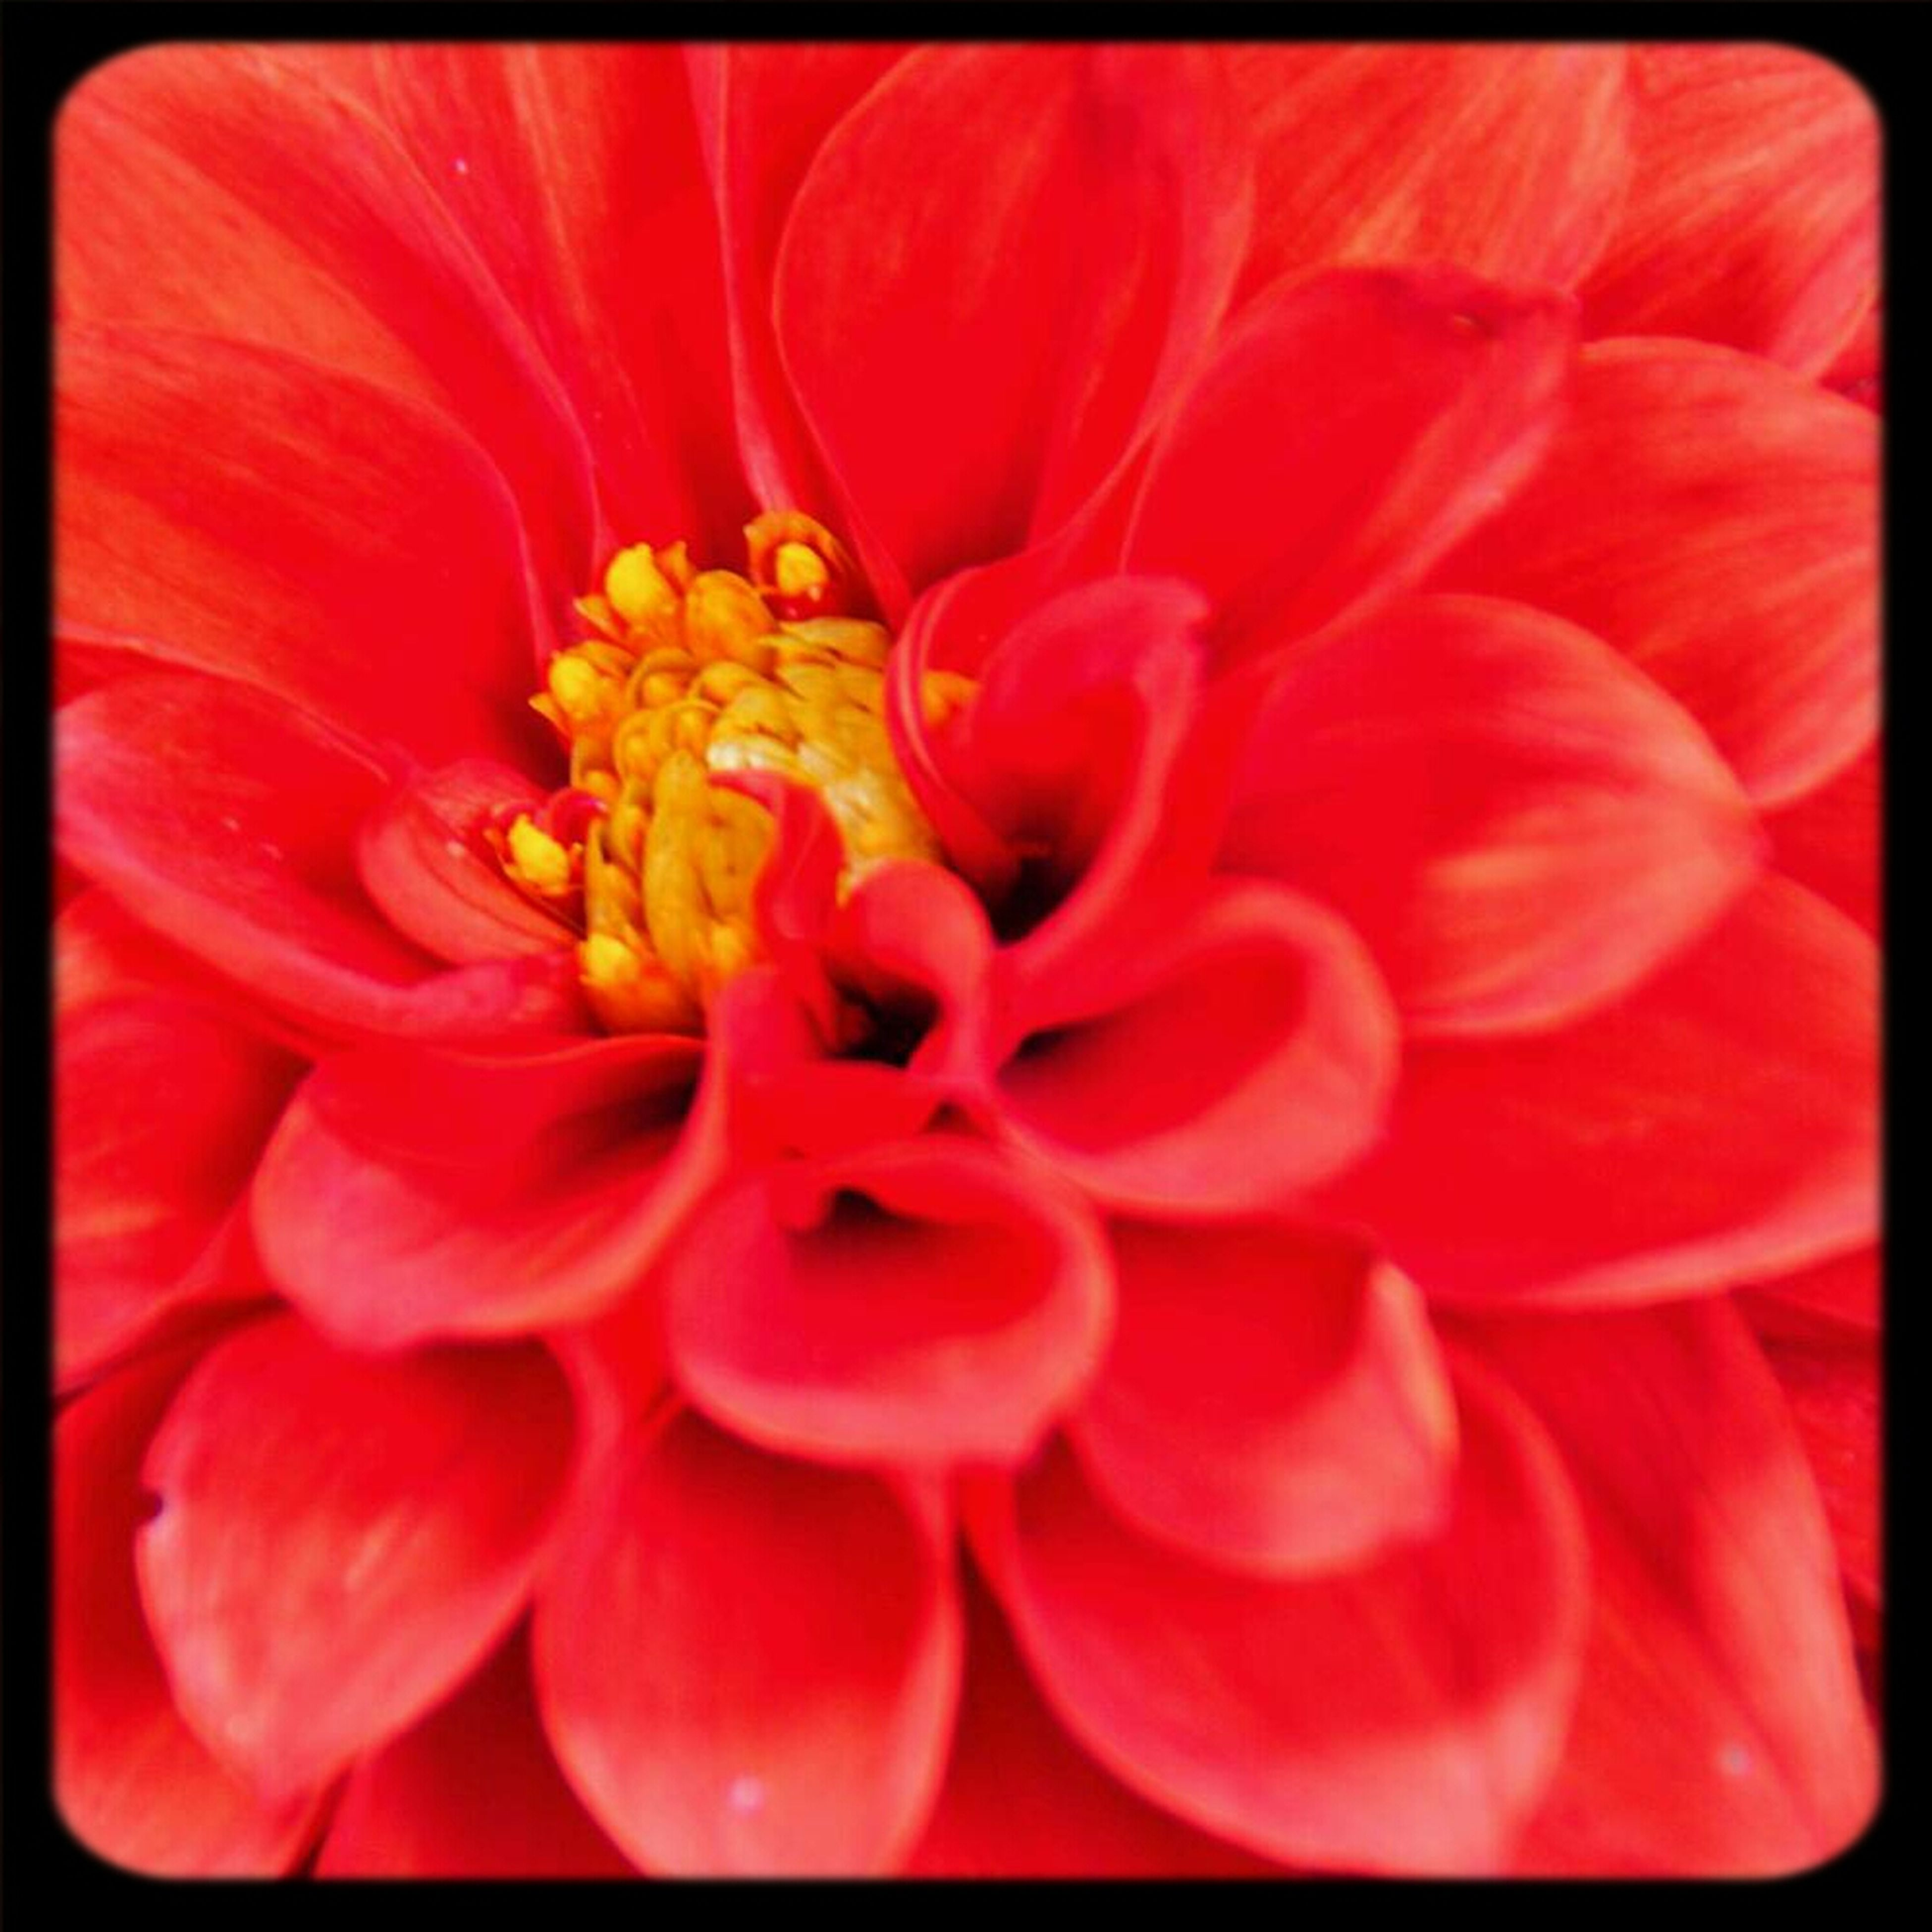 flower, transfer print, petal, red, flower head, freshness, auto post production filter, fragility, beauty in nature, close-up, single flower, growth, nature, pollen, full frame, blooming, backgrounds, stamen, no people, vibrant color